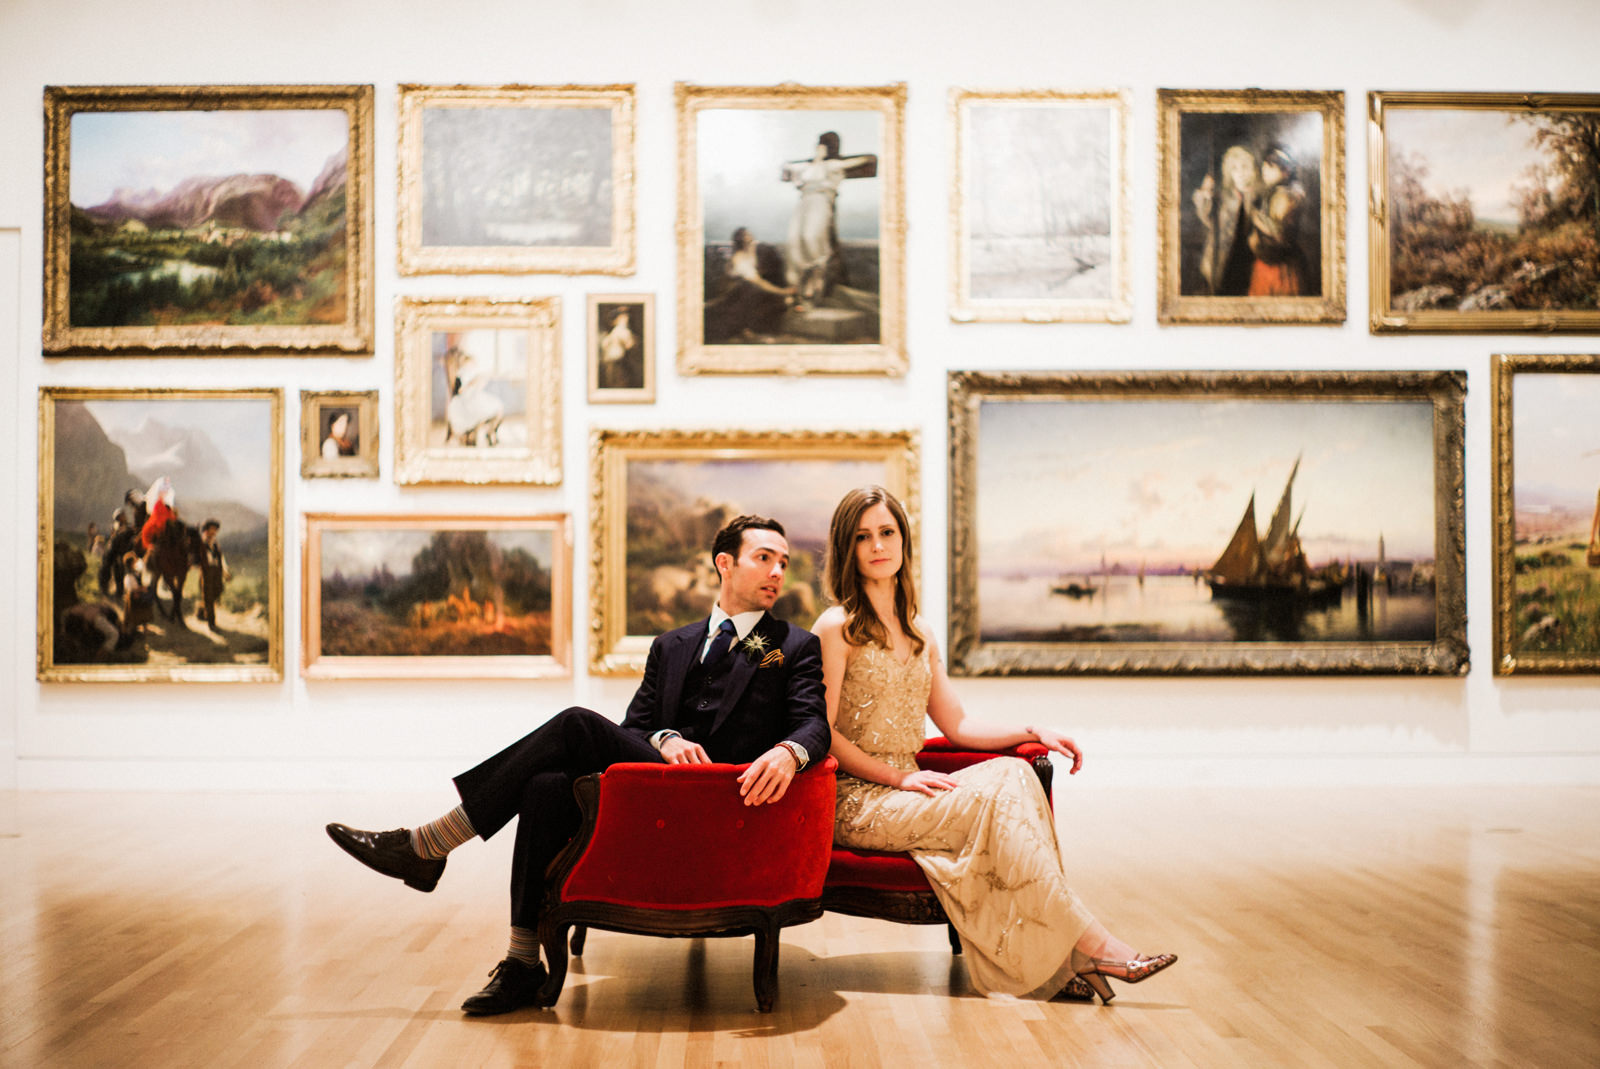 101-stylish-wedding-portrait-in-museum-by-seattle-wedding-photographer-ryan-flynn.jpg